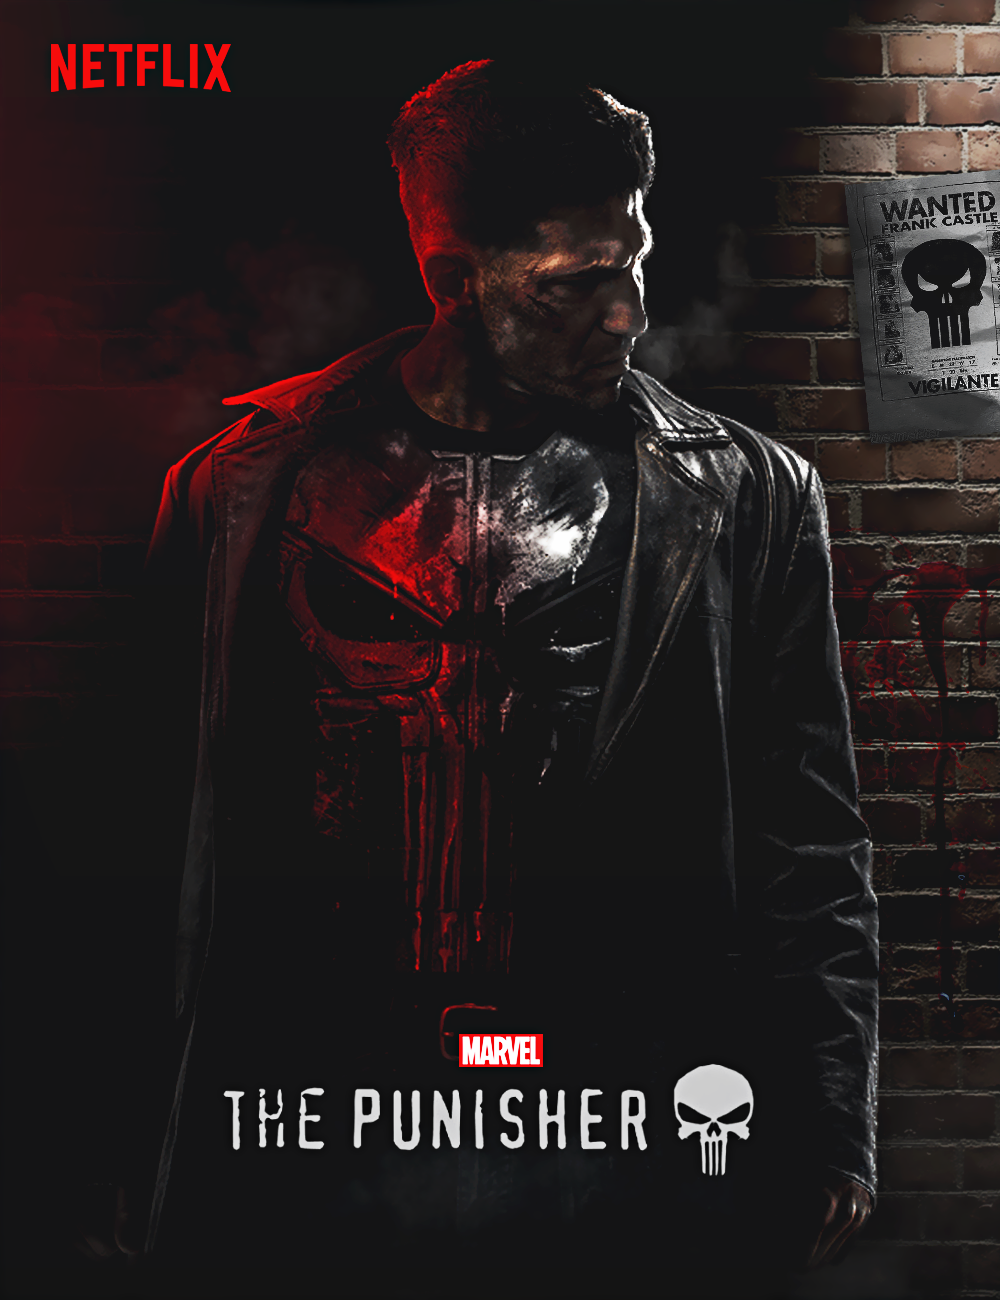 Punisher 3 - نقد سریال The Punisher